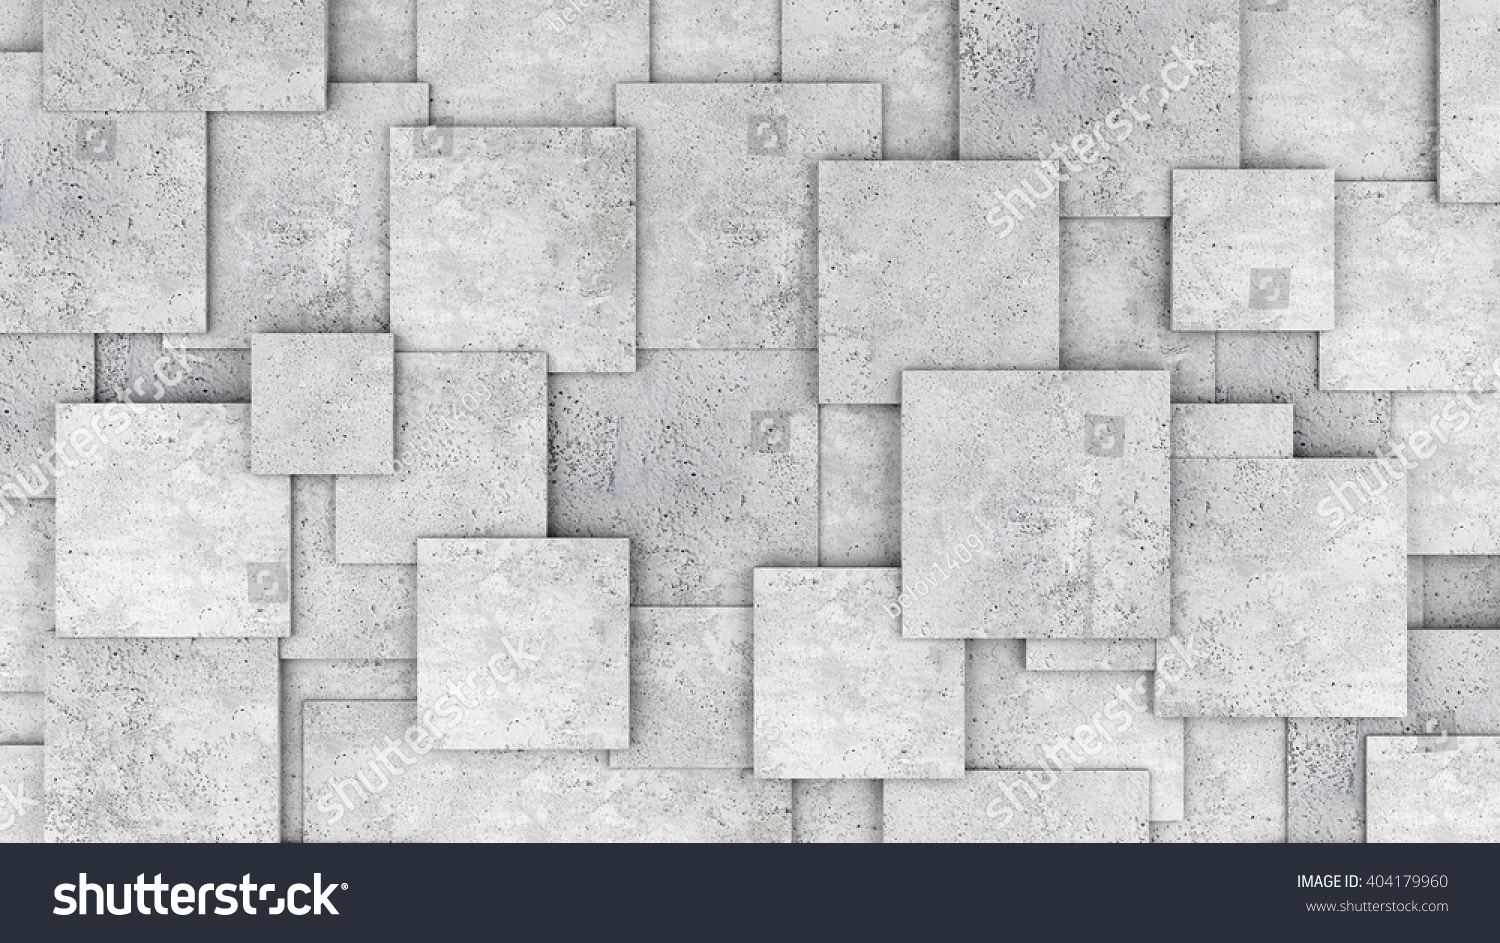 Concrete 3d cube wall background wallpaper stock for Best wallpapers for home walls